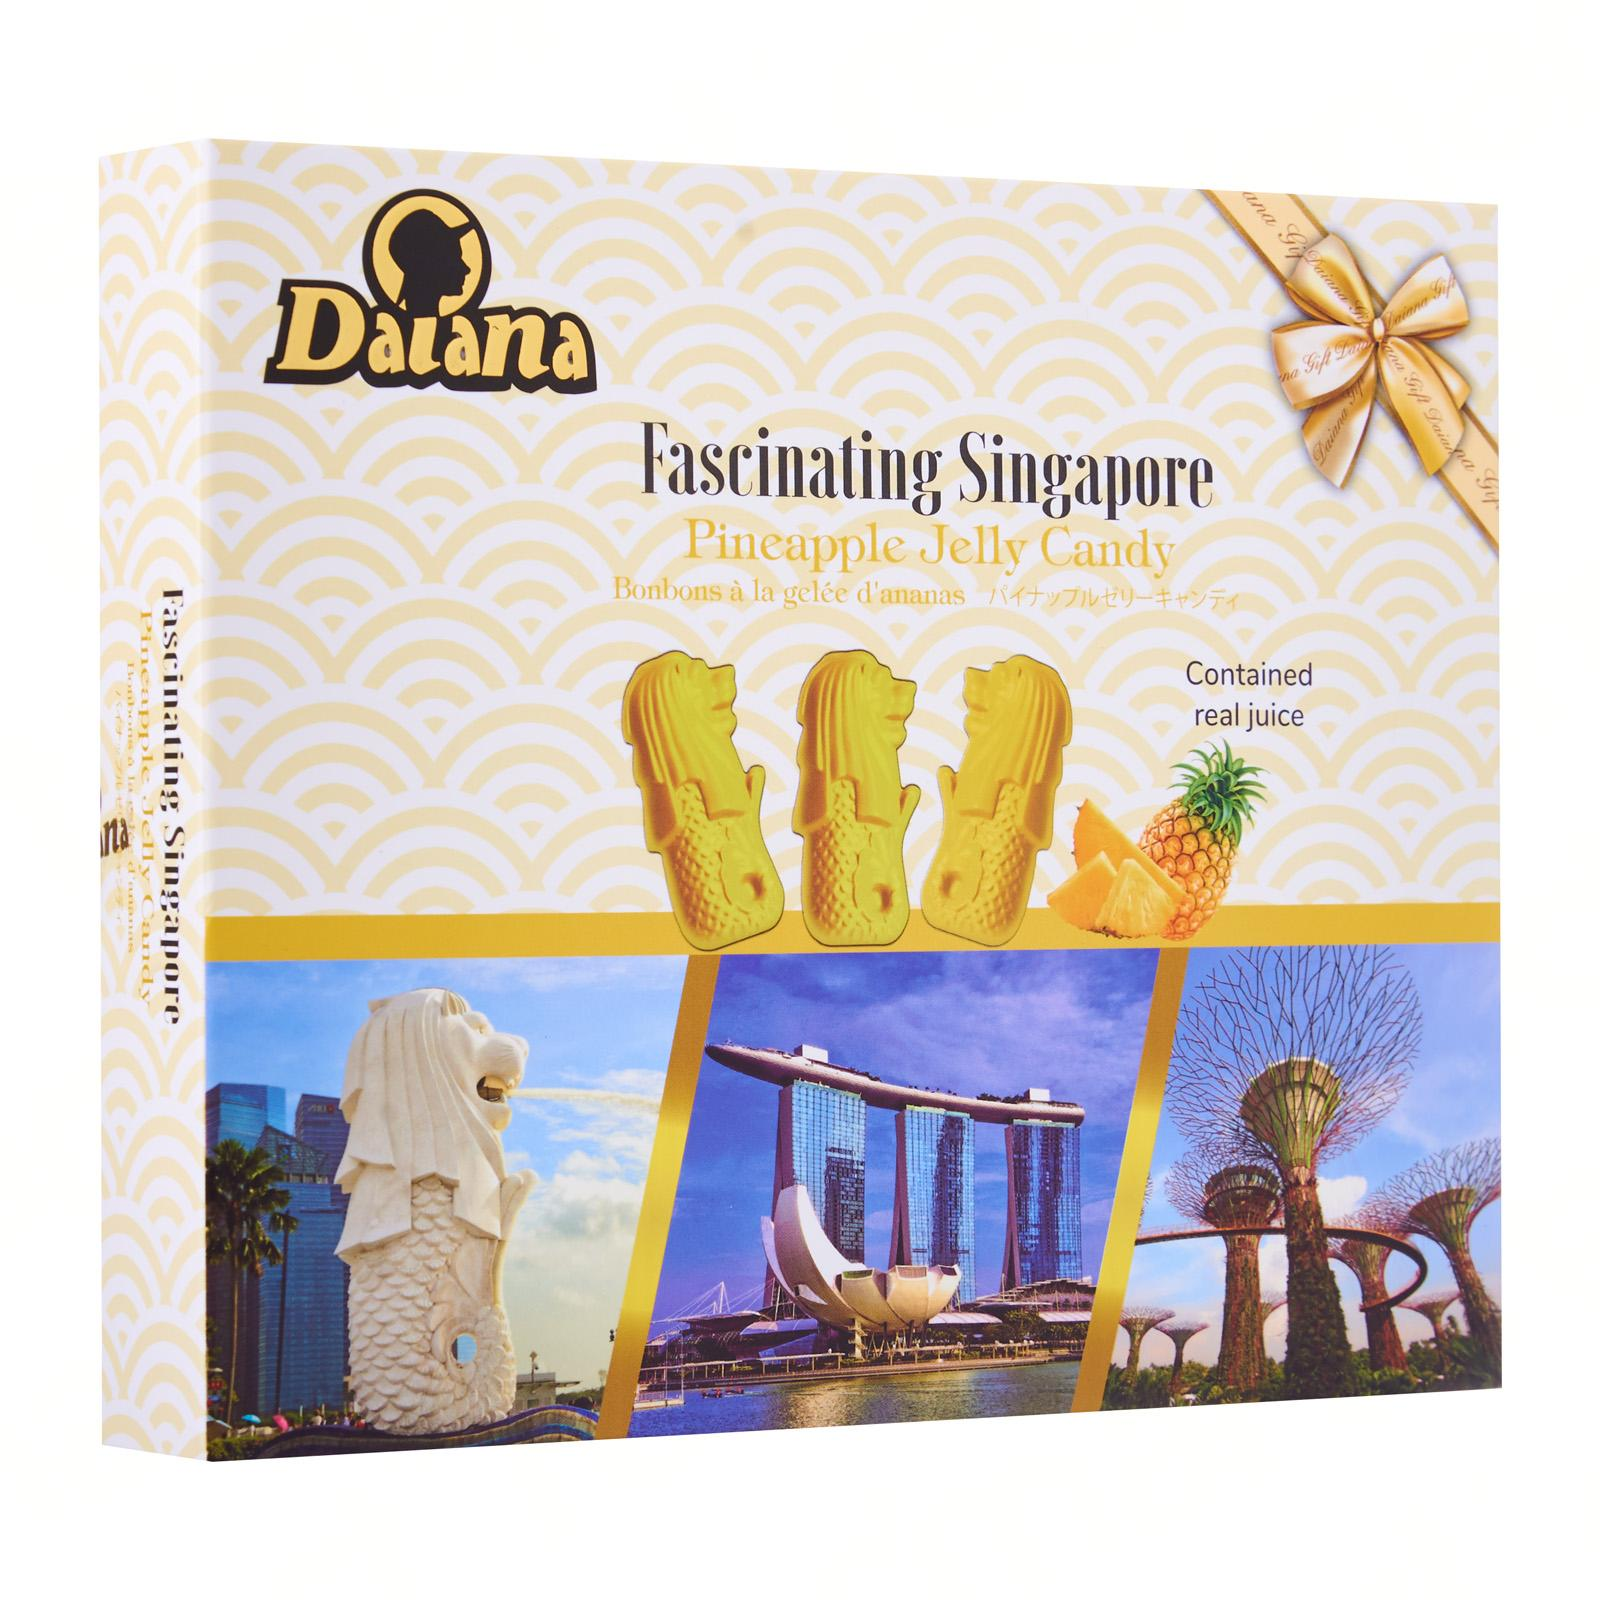 Daiana Merlion Pineapple Jelly Candy